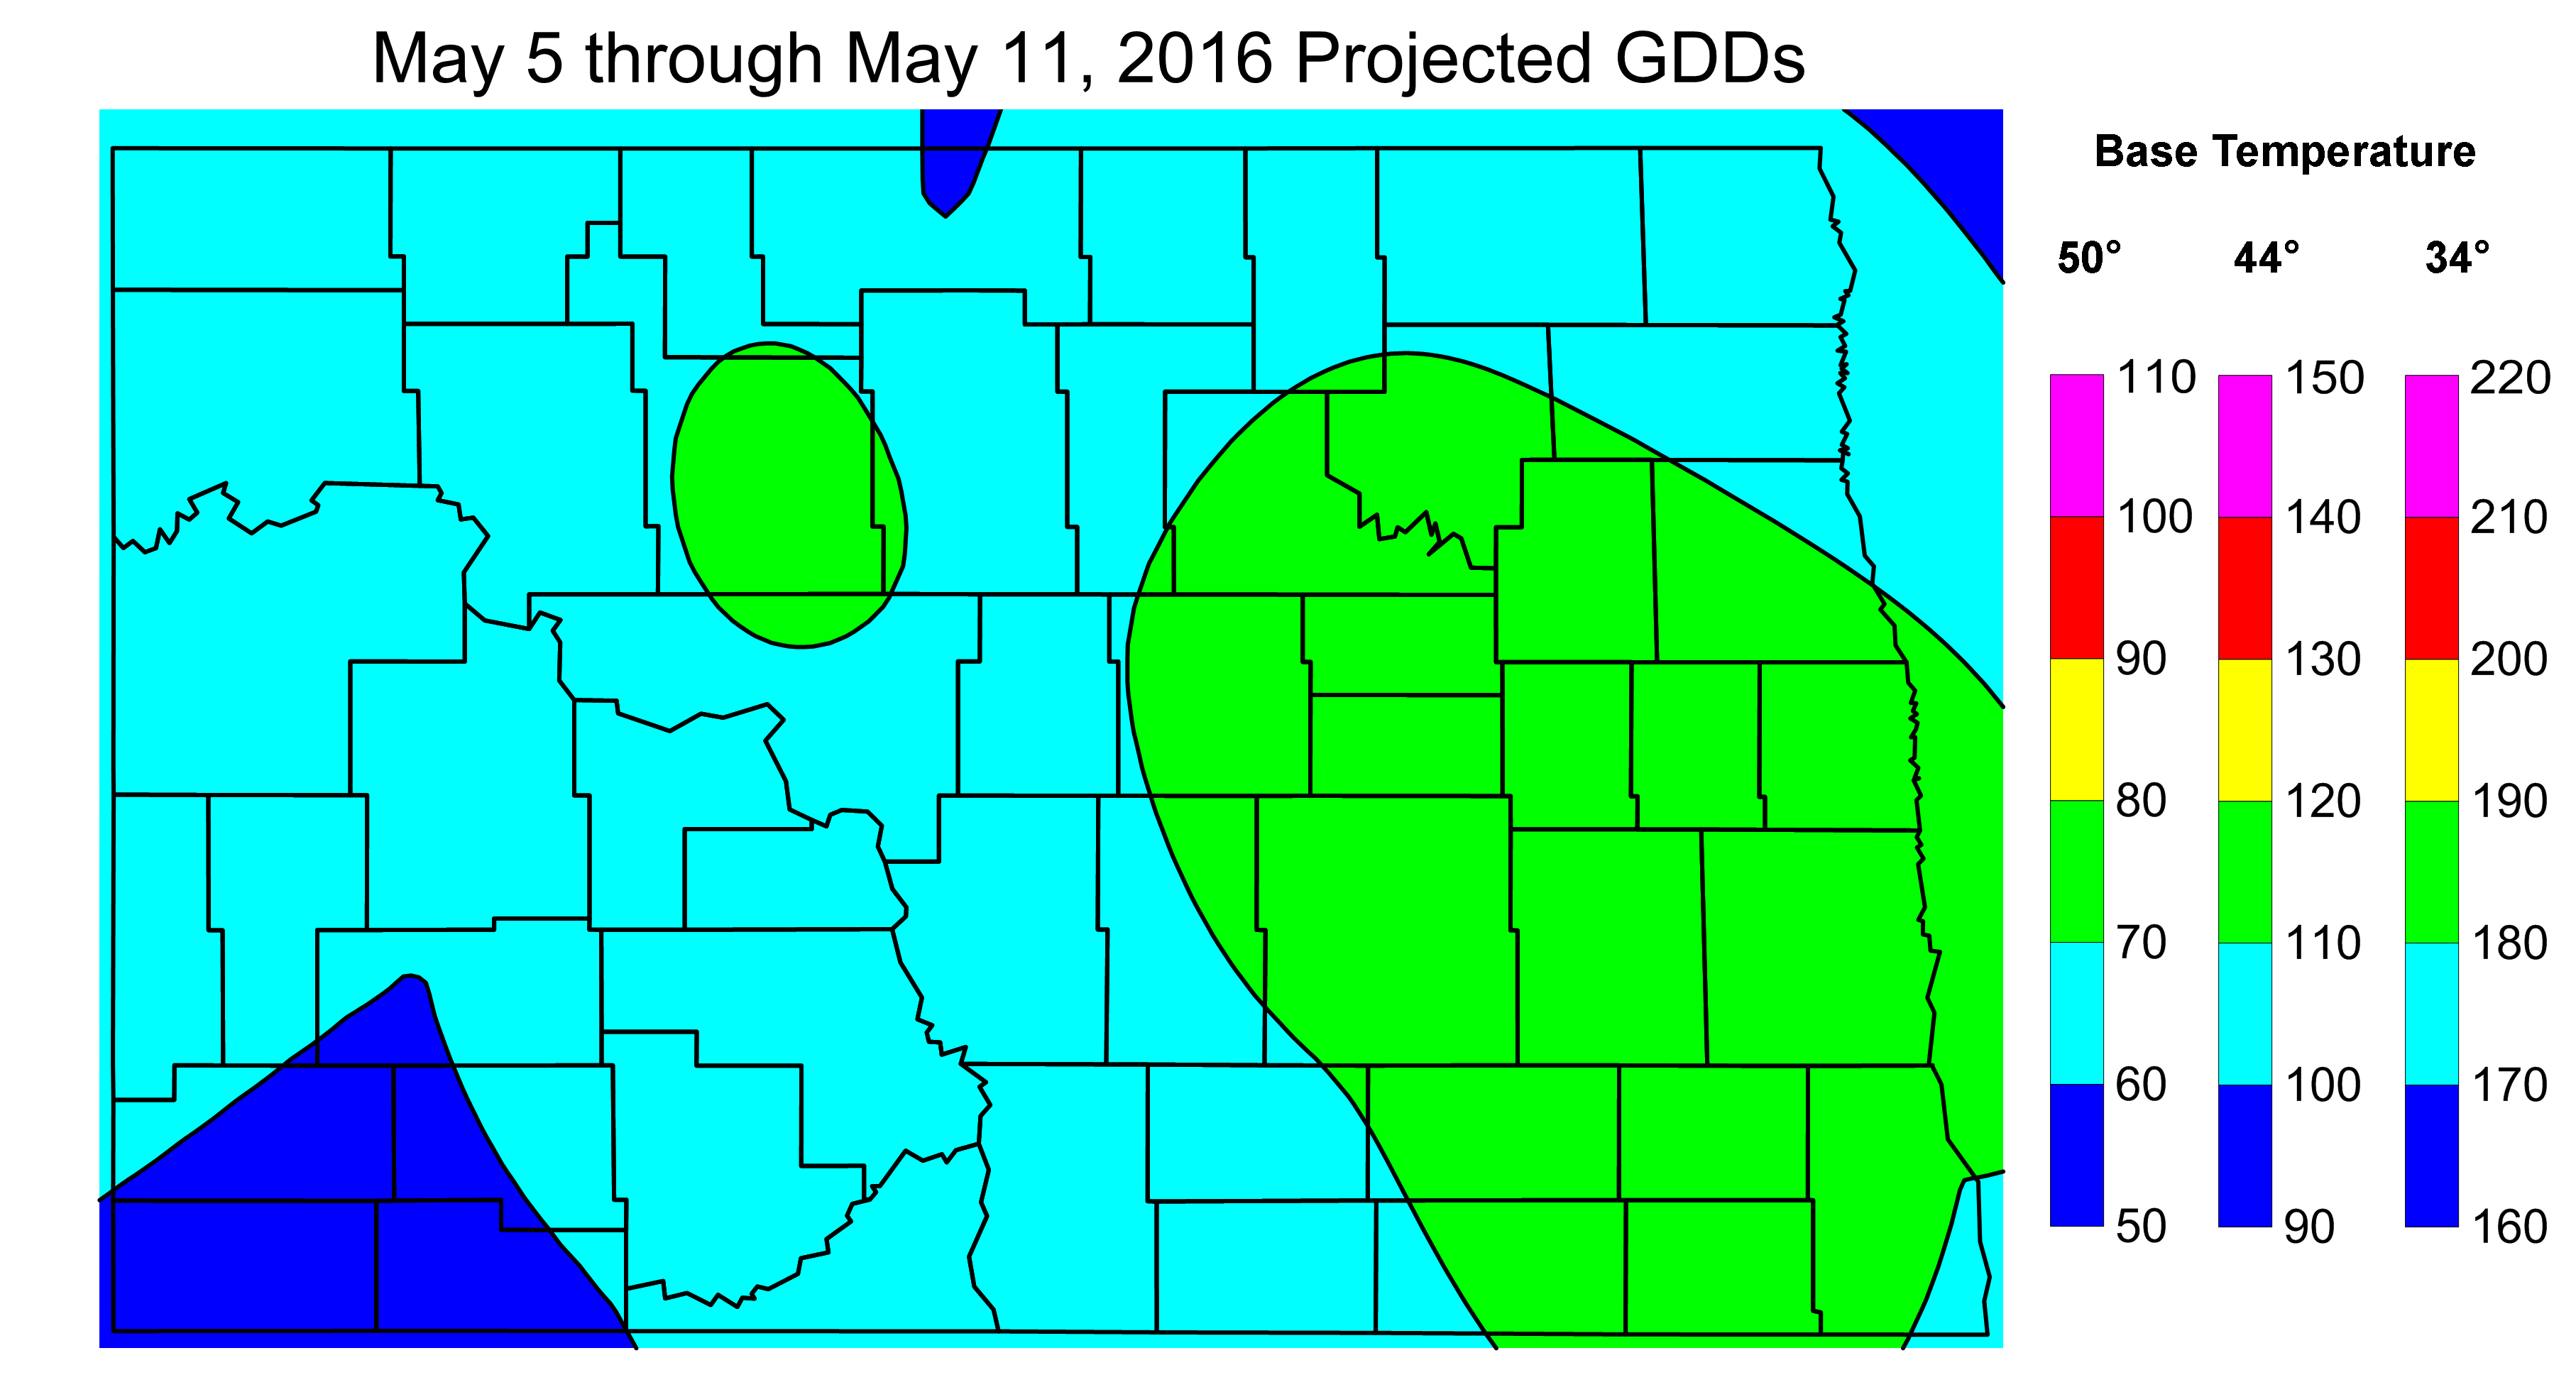 Figure 2. Projected Growing Degree Days from May 5 through May 11, 2016